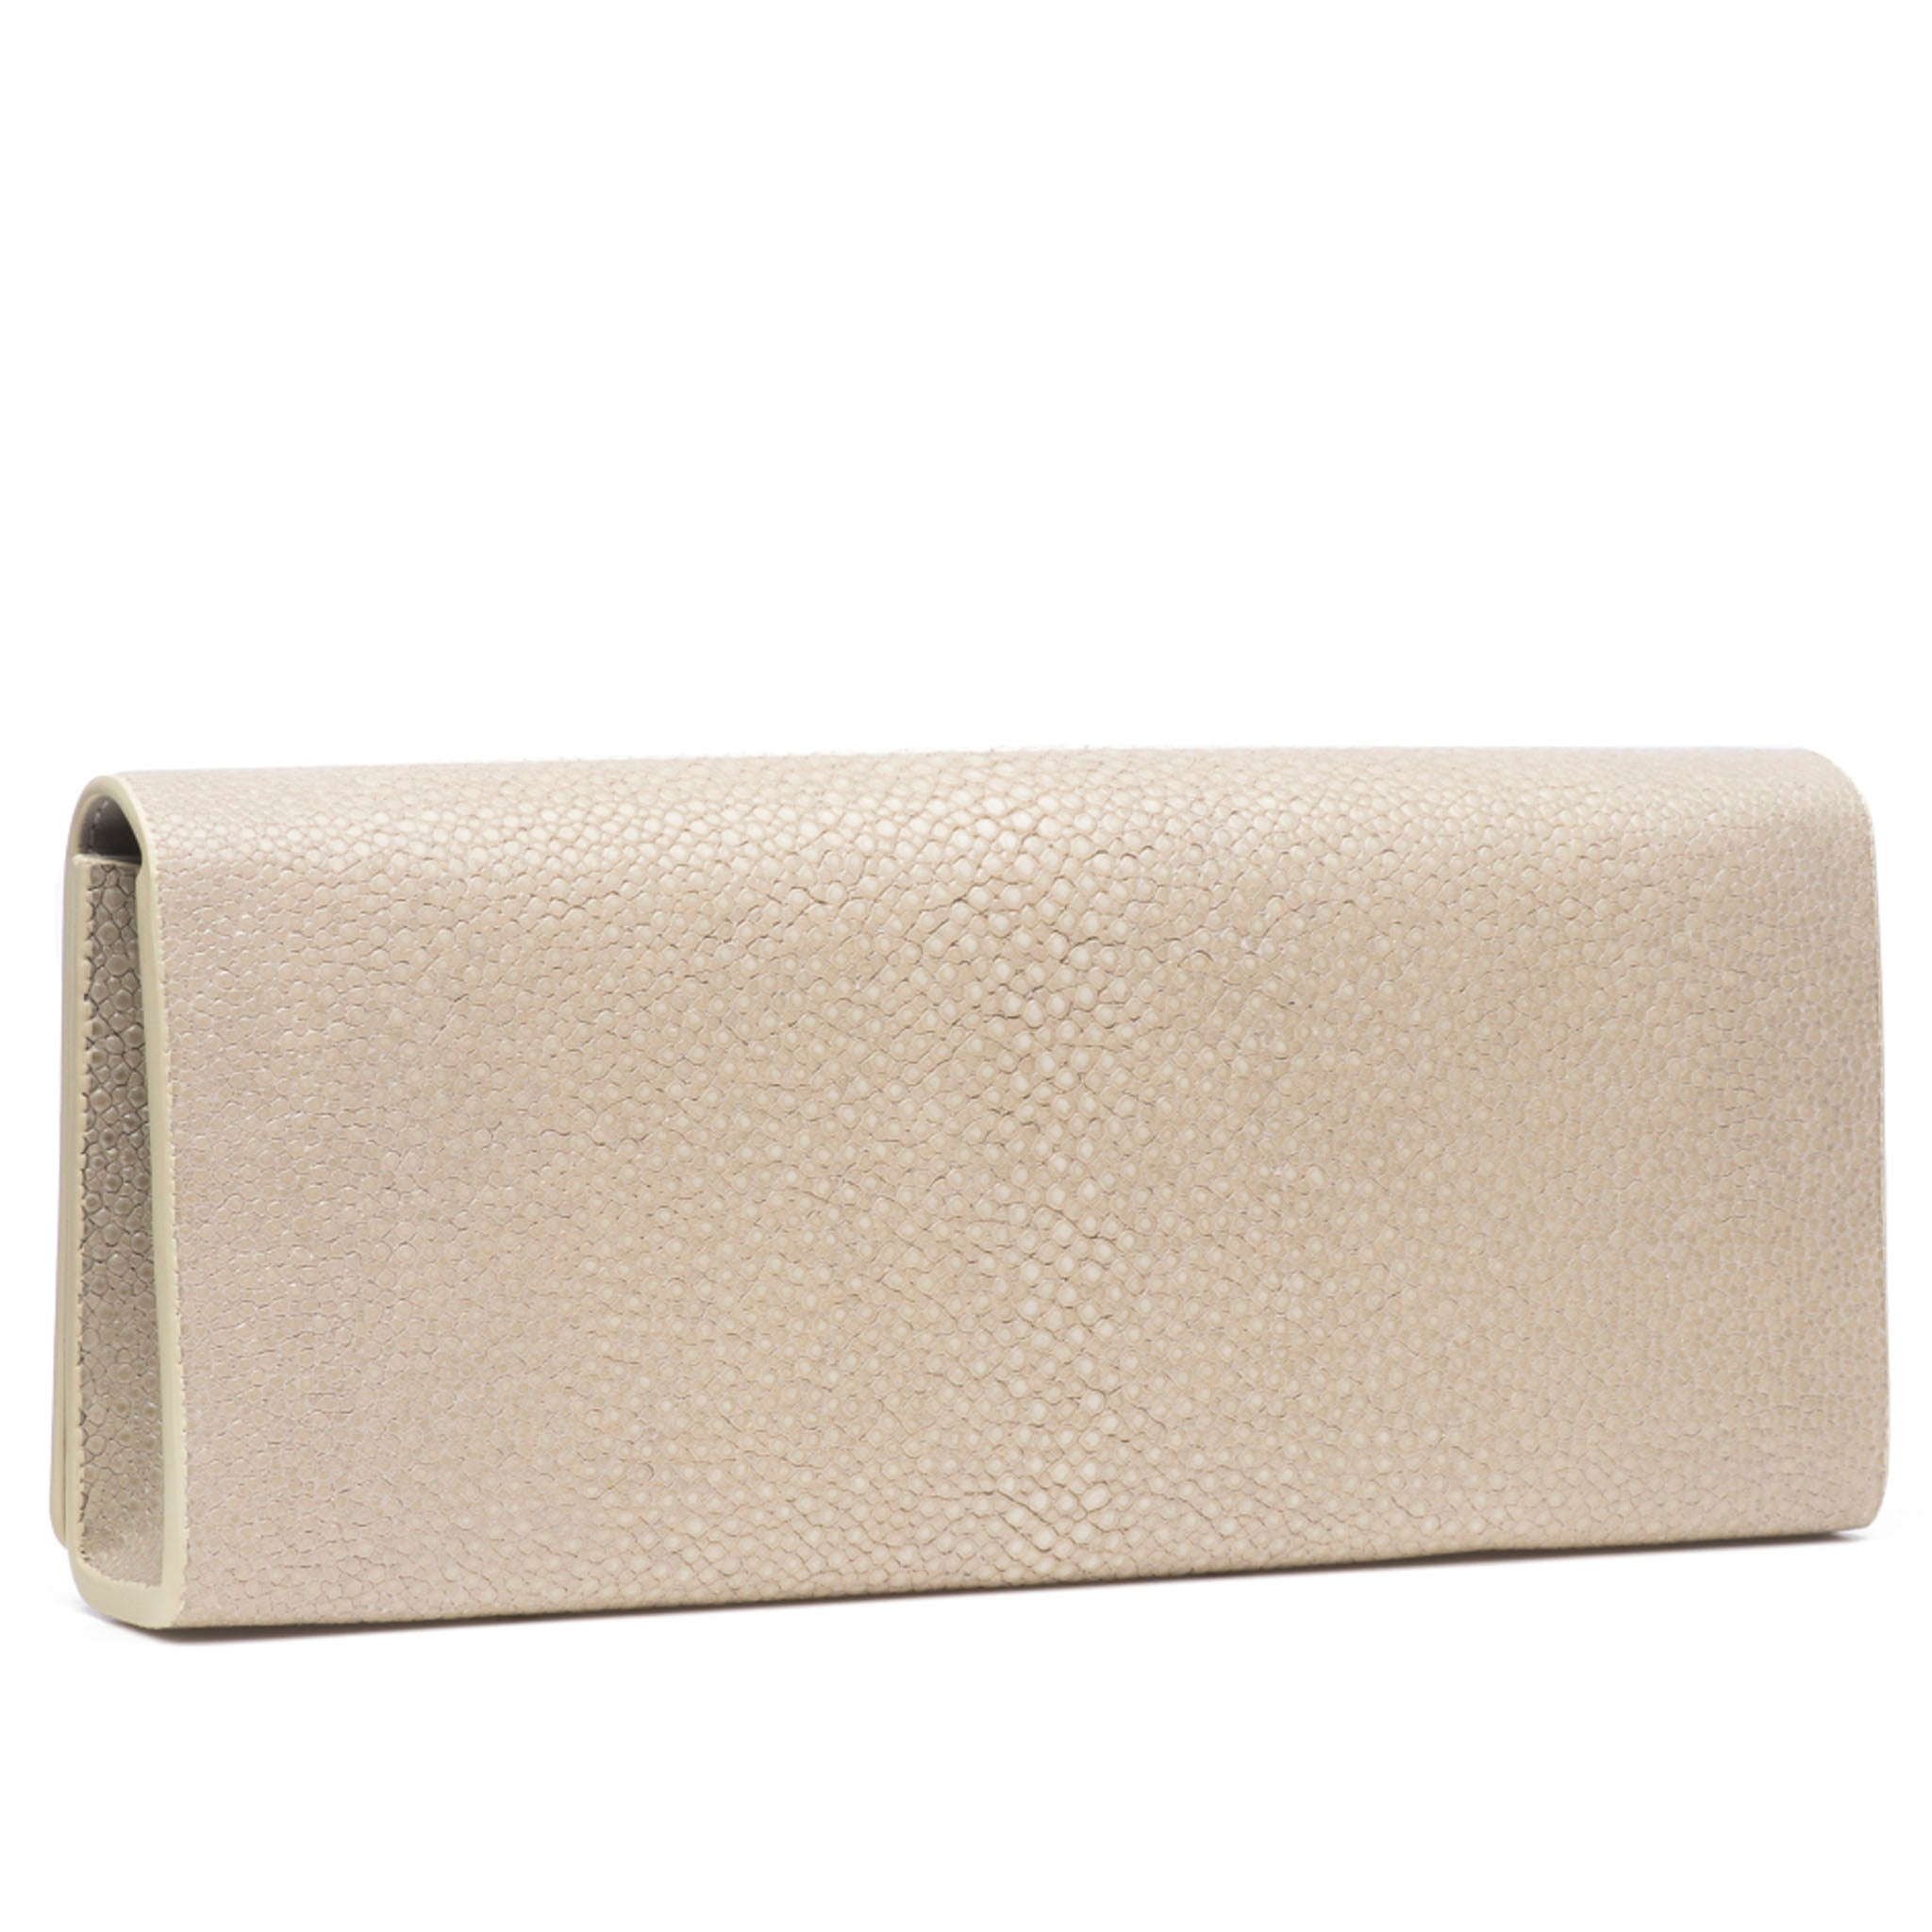 Wheat Shagreen Clutch Bag Back View Cleo - Vivo Direct